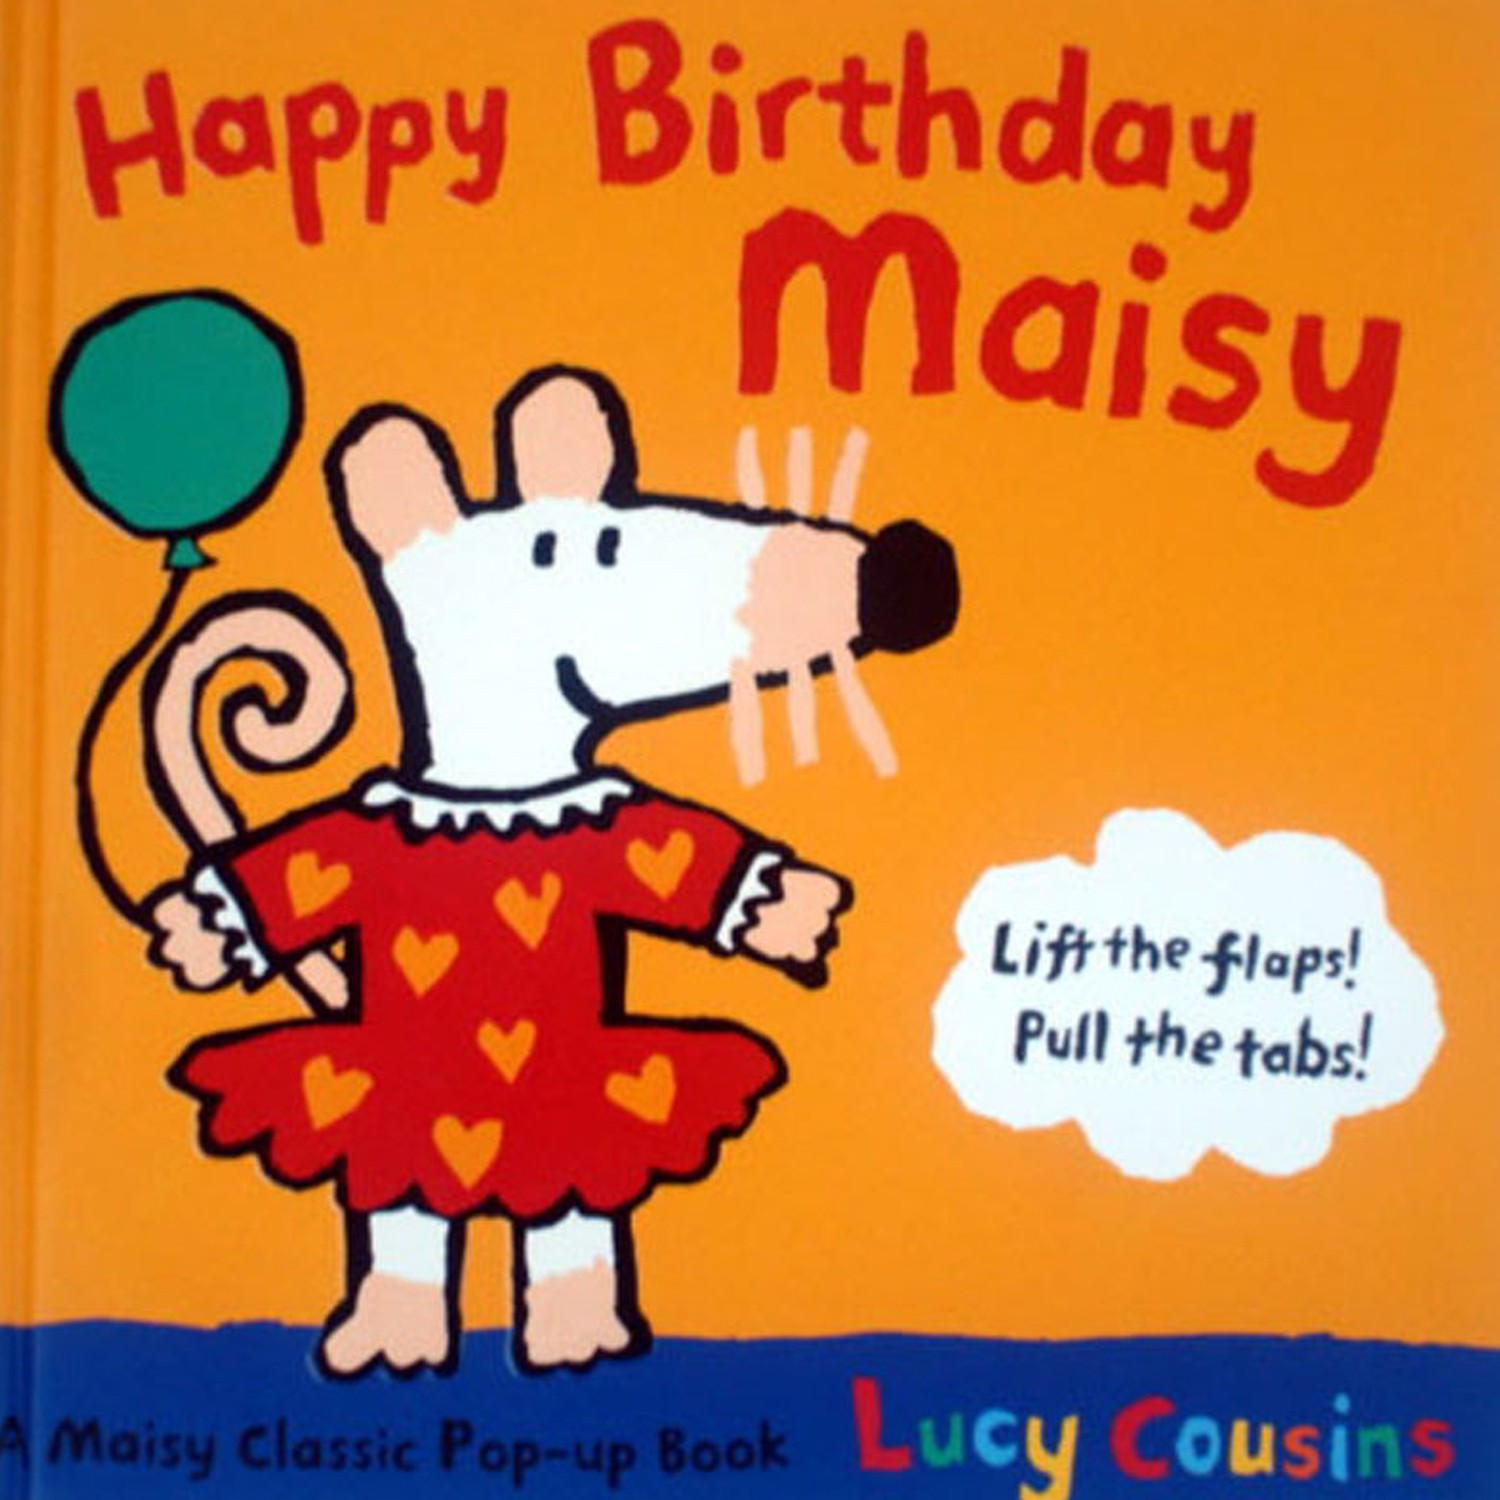 HAPPY BIRTHDAY MAISY-操作書-彩色 (19.5×19.5cm)